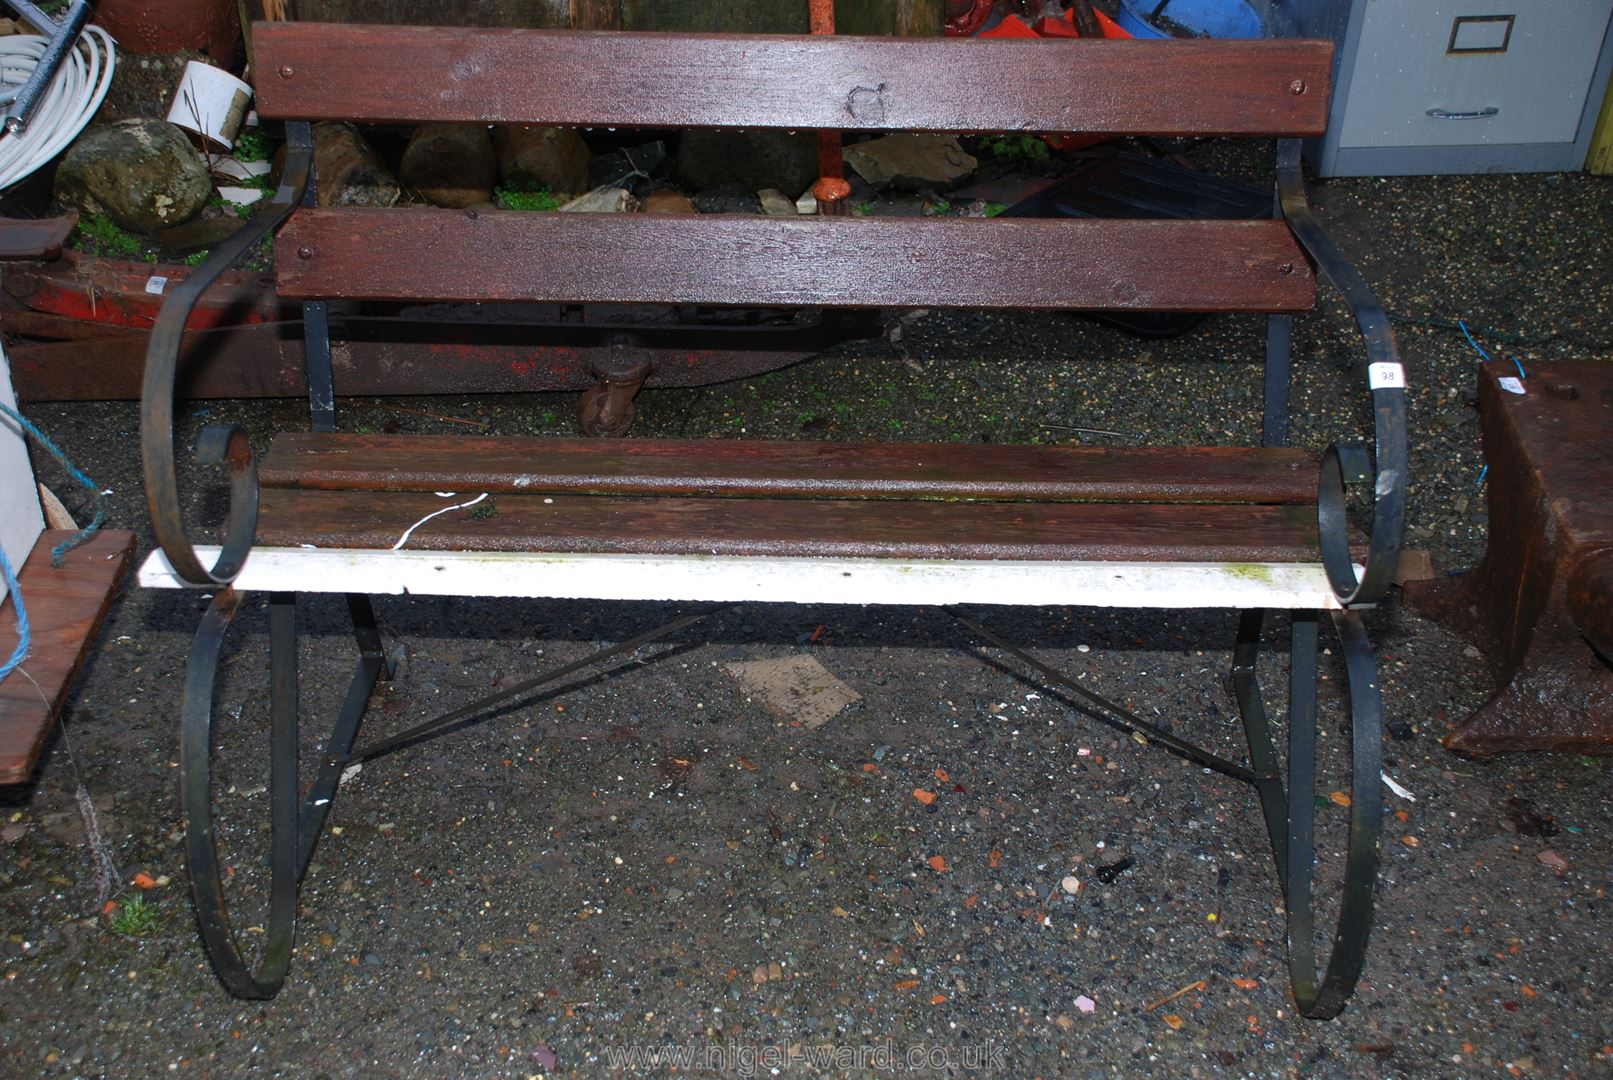 A metal framed garden bench.